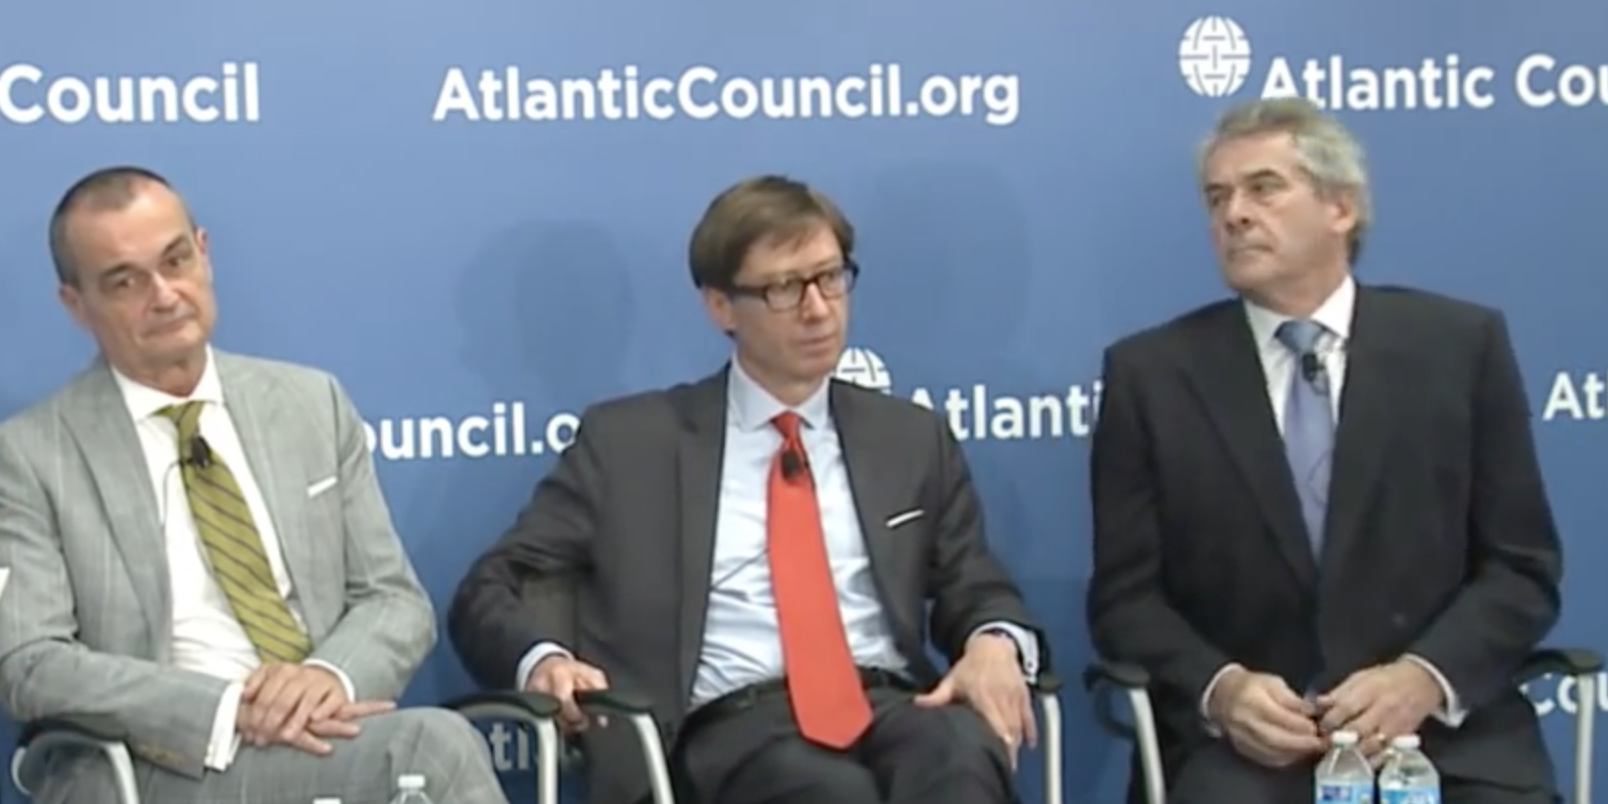 French ambassador to the U.S. Gerard Araud, German to the ambassador U.S. Peter Wittig and U.K. to the ambassador U.S Peter Westmacott at The Atlantic Council on May 26, 2015.